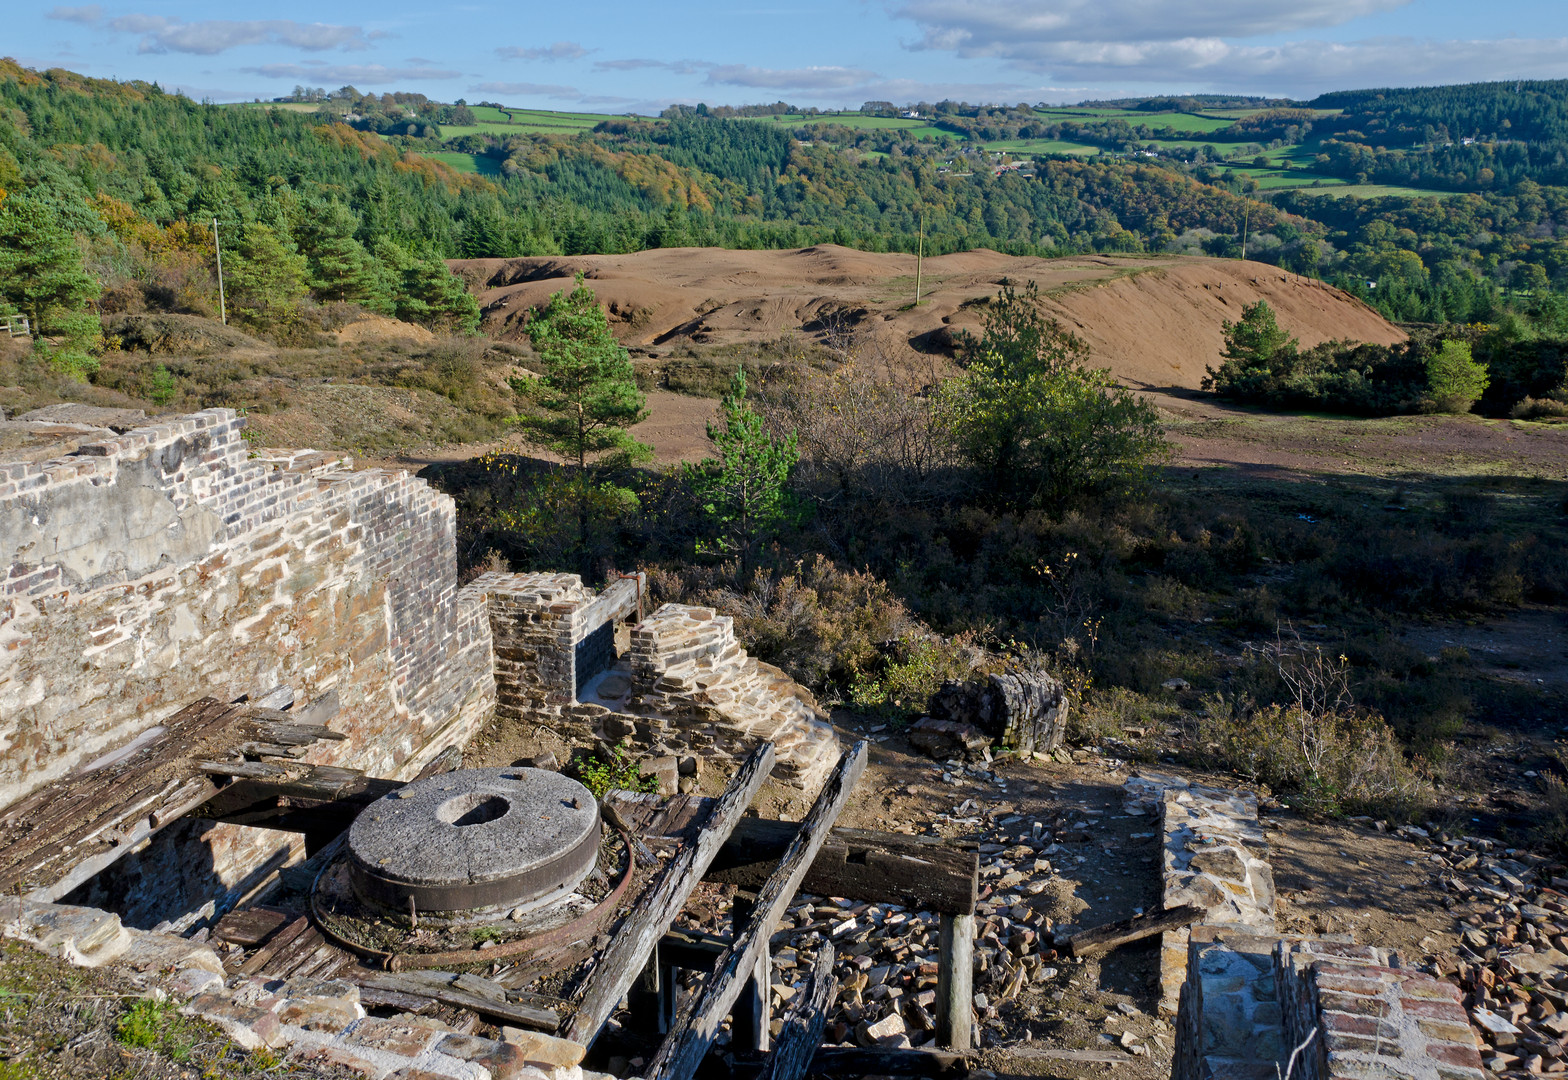 Arsenic Grinder at Devon Great Consols - Ainsley Cocks © Cornwall Council